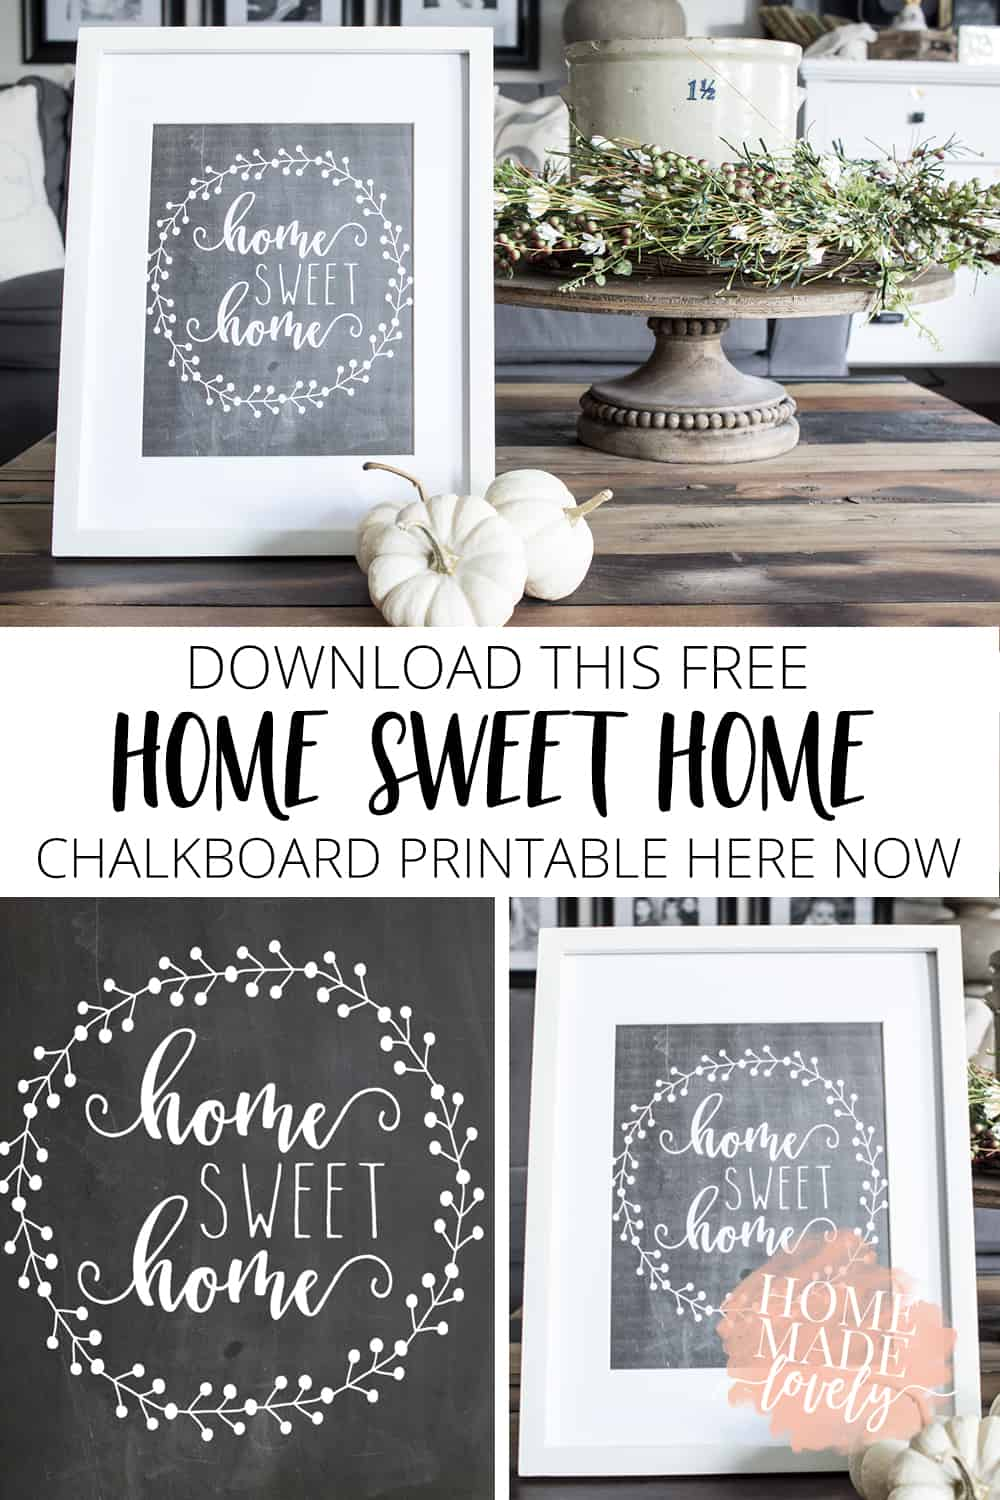 To ease into the fall season, even if it still feels like summer outside, you can download this free home sweet home chalkboard printable here now!